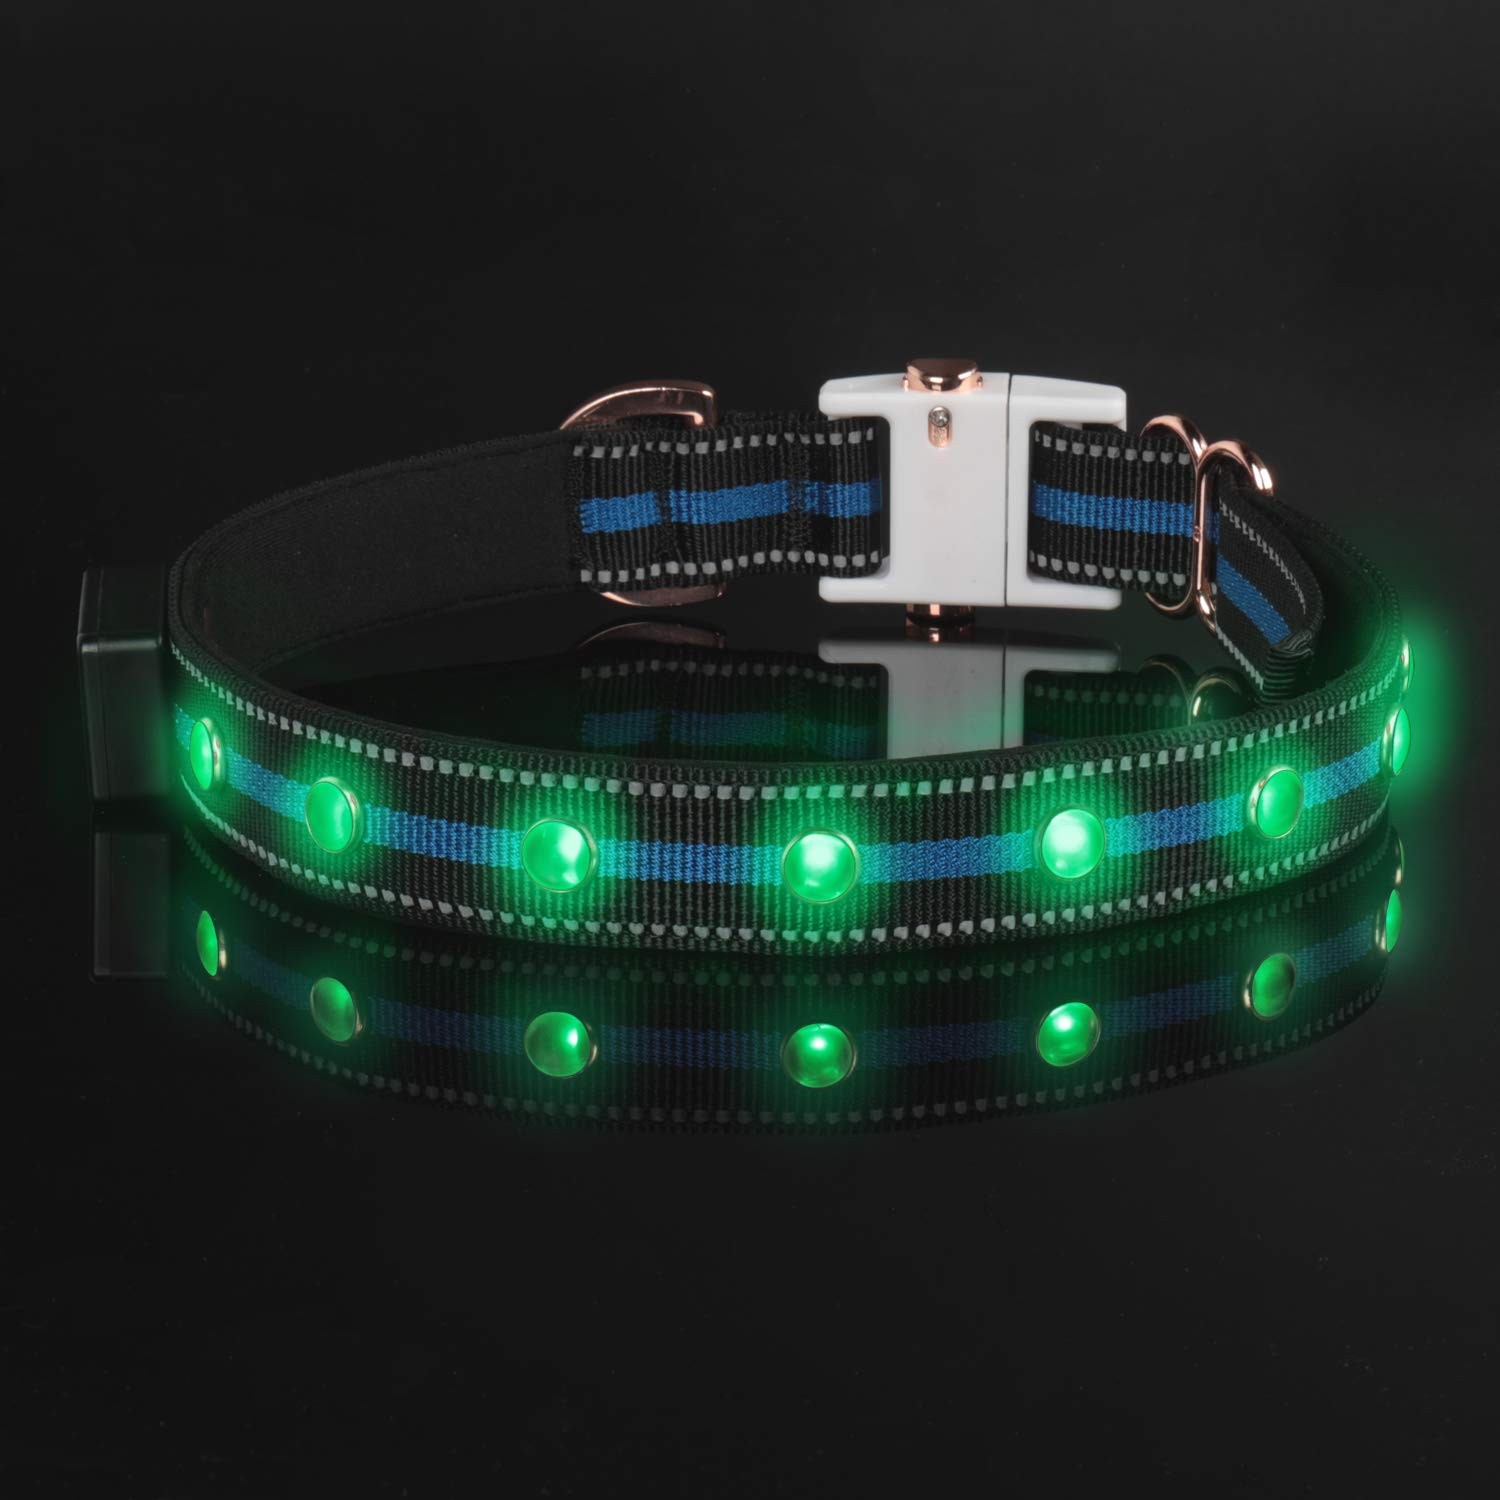 DOGNESS LED Dog Collar, USB Rechargeable Lights, with 3 Glowing Modes for Night Safety, Water Resistance, Adjustable for Medium Large Dogs, Blue, Matching Leash Sold Separately